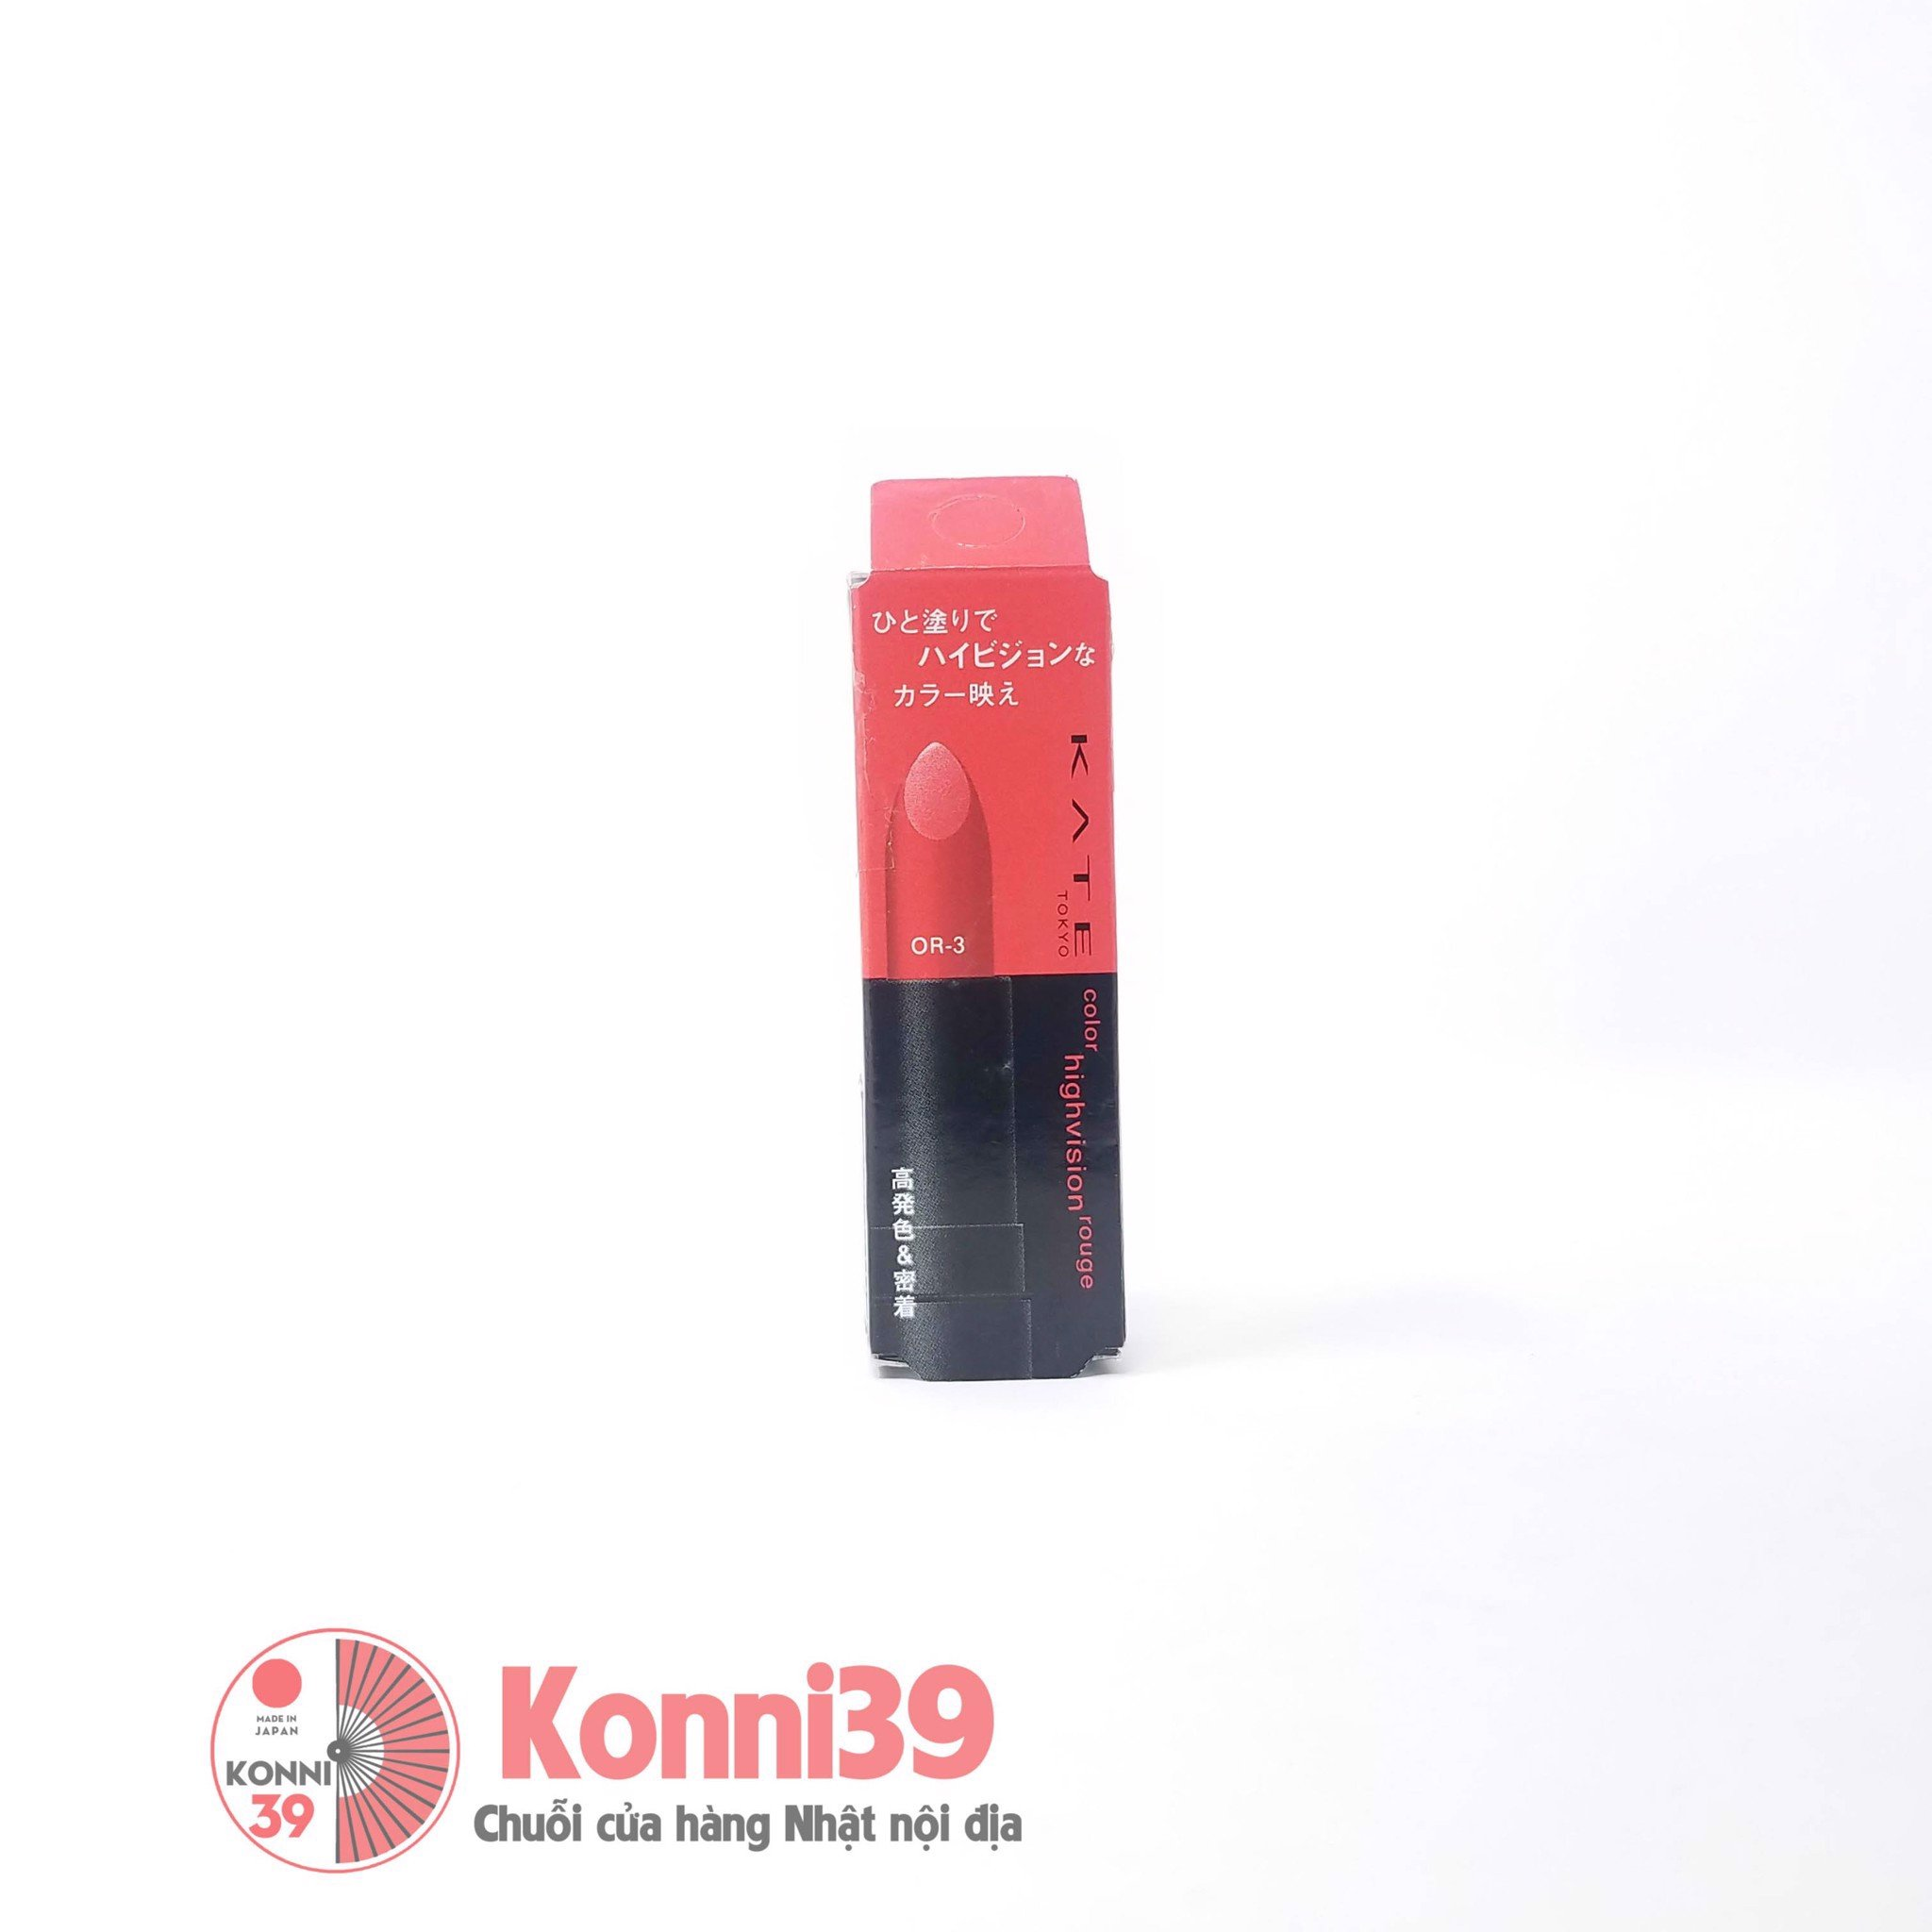 Son Kate color highvision rouge 3.4g màu OR-3